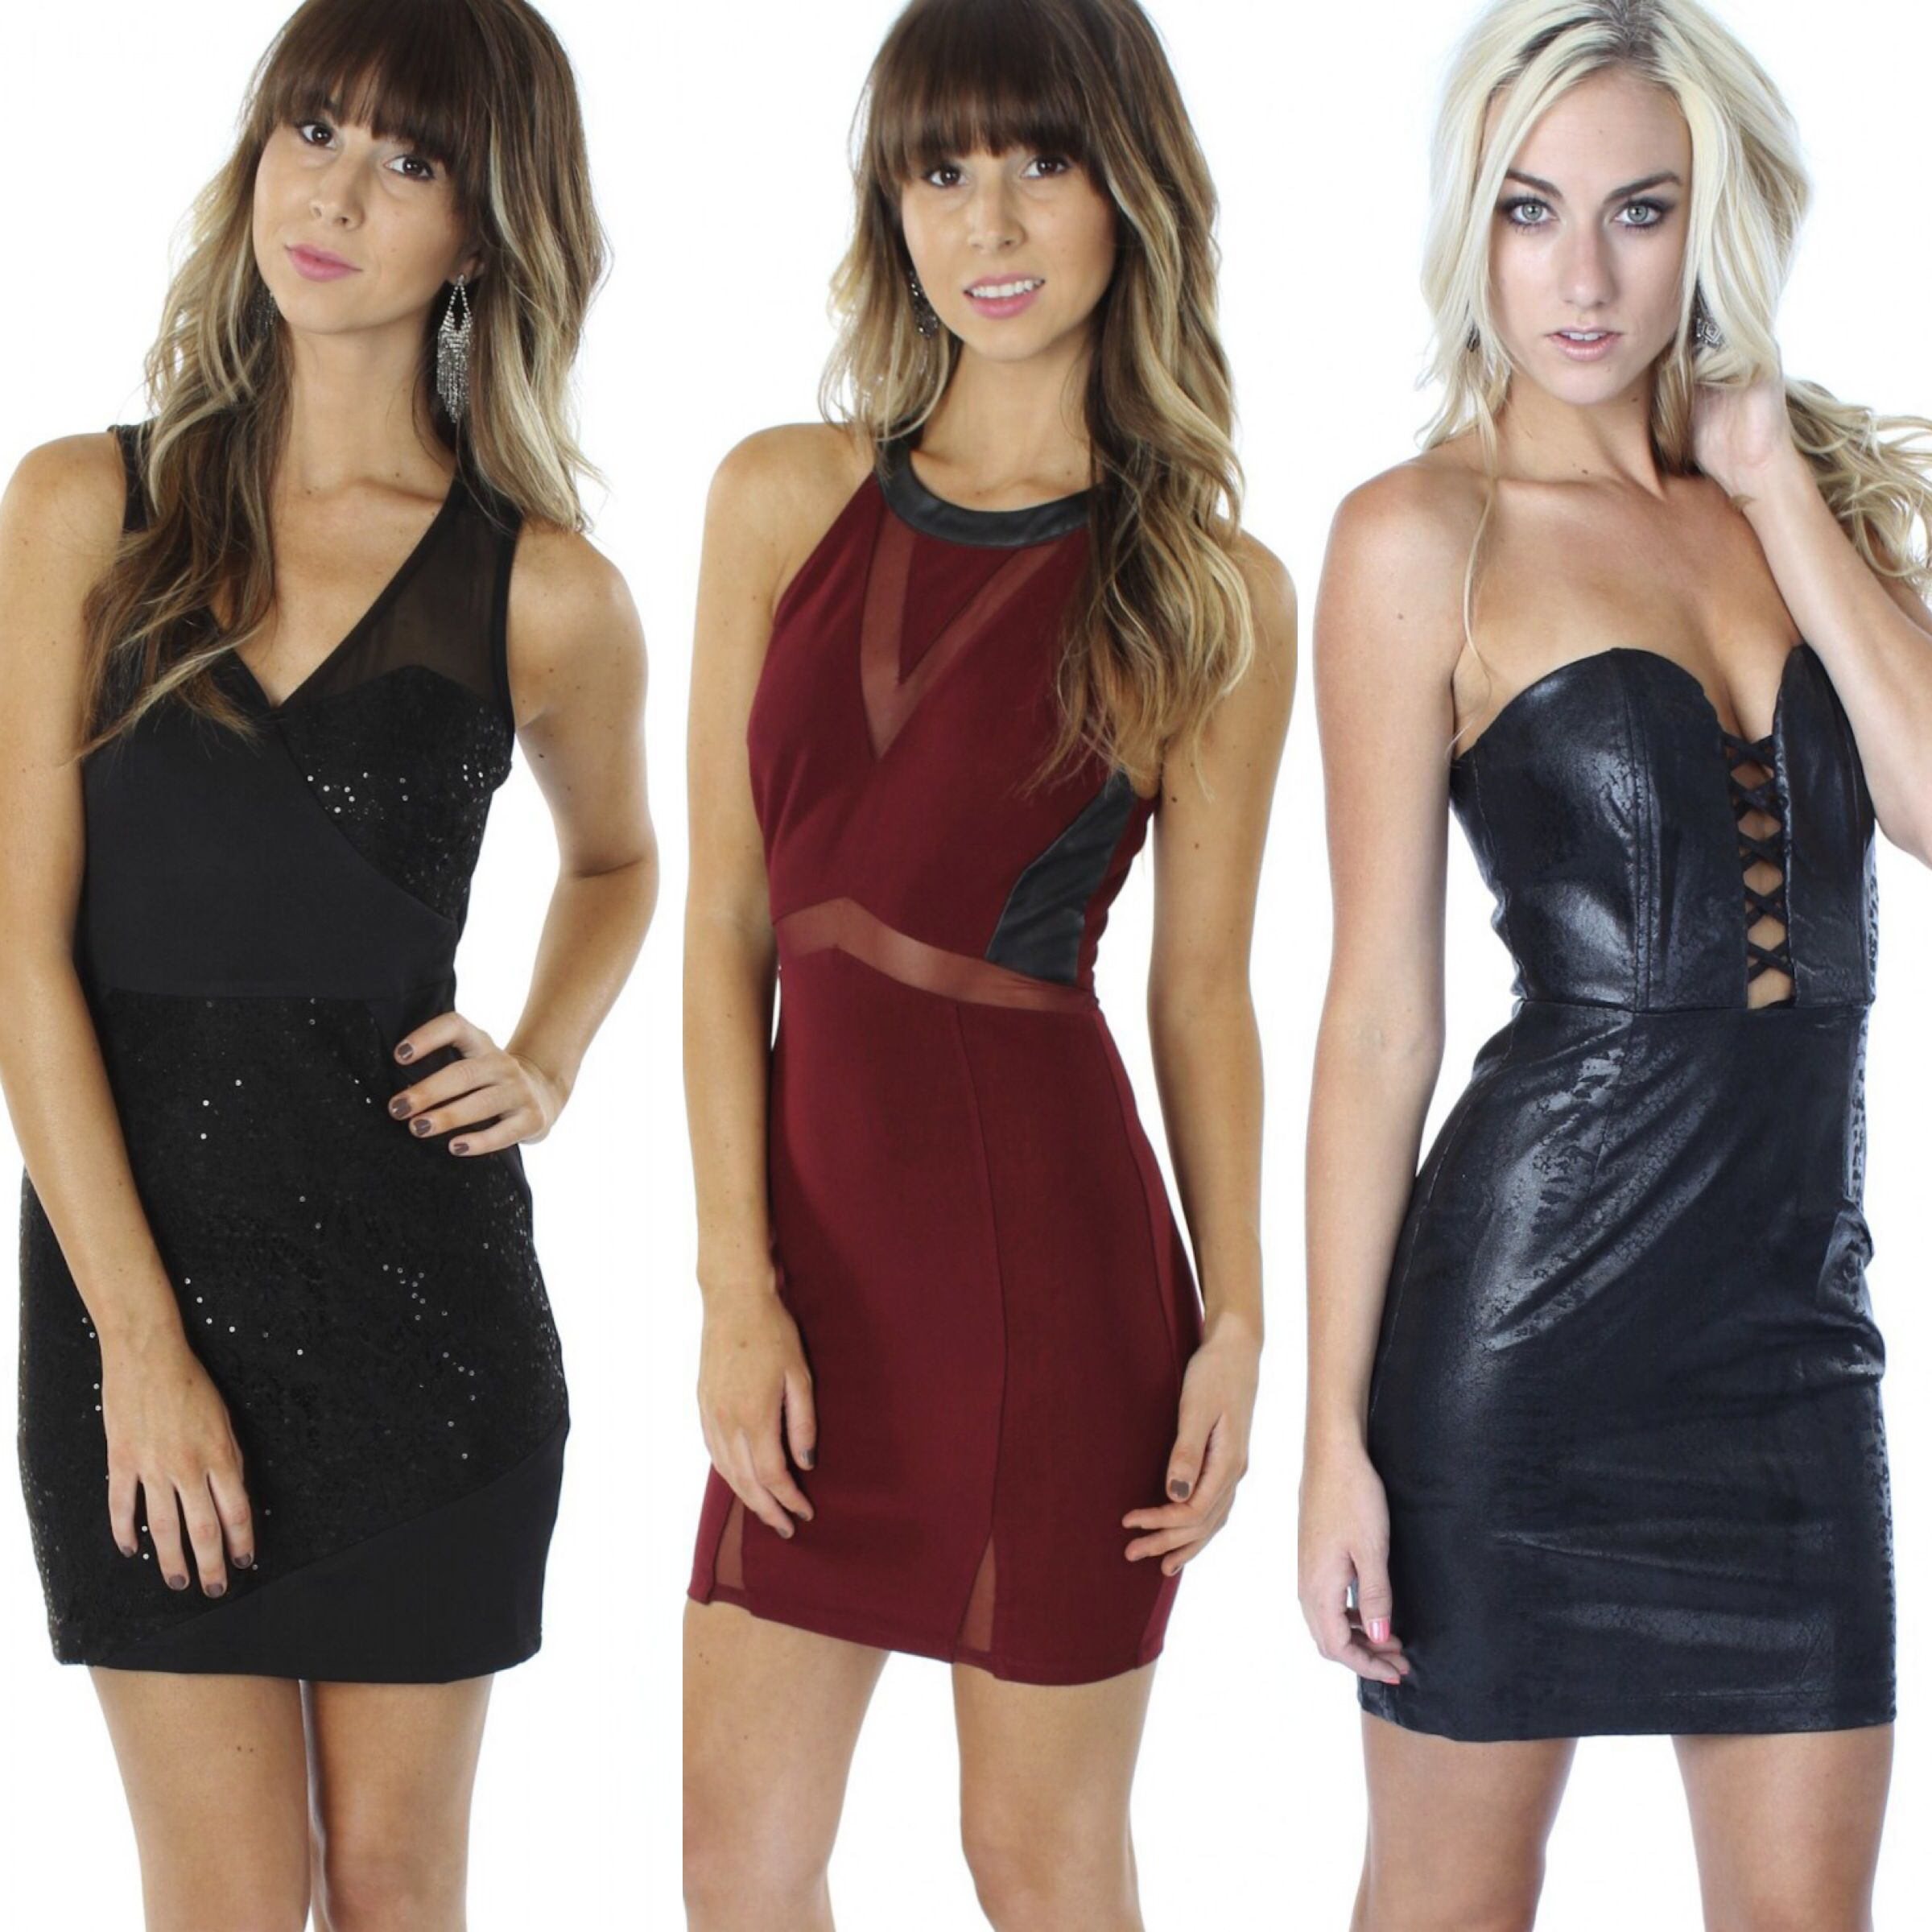 Sooo many fabulous NEW dresses just hit the site and NOW in stores!!! All only $34.99-$39.99...shop them now at www.sophieandtrey.com with #freeshipping or in store at #sophieandtrey! #newarrivals #dresses #glam #homecoming #musthave #leather #lace